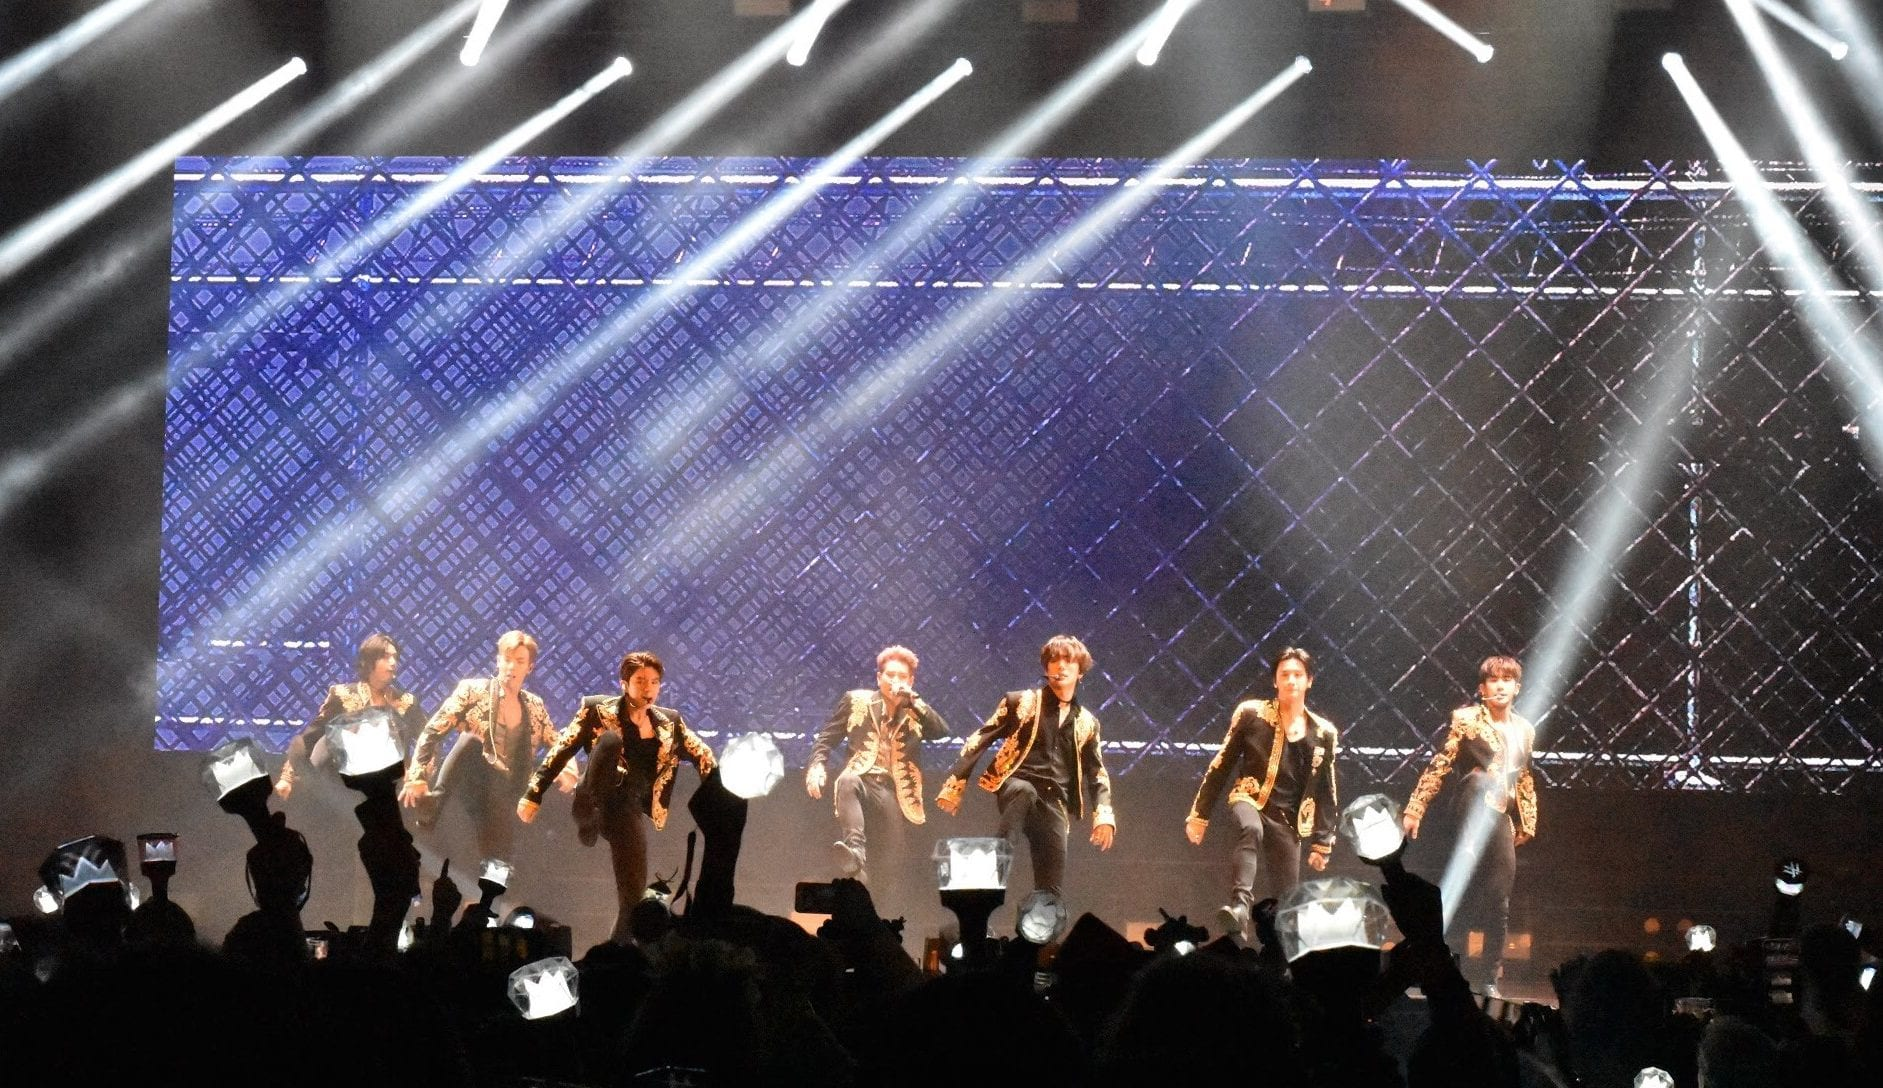 REVIEW: MONSTA X Proves Why They're K-pop's Newest Obsession With Epic Concert In Atlanta